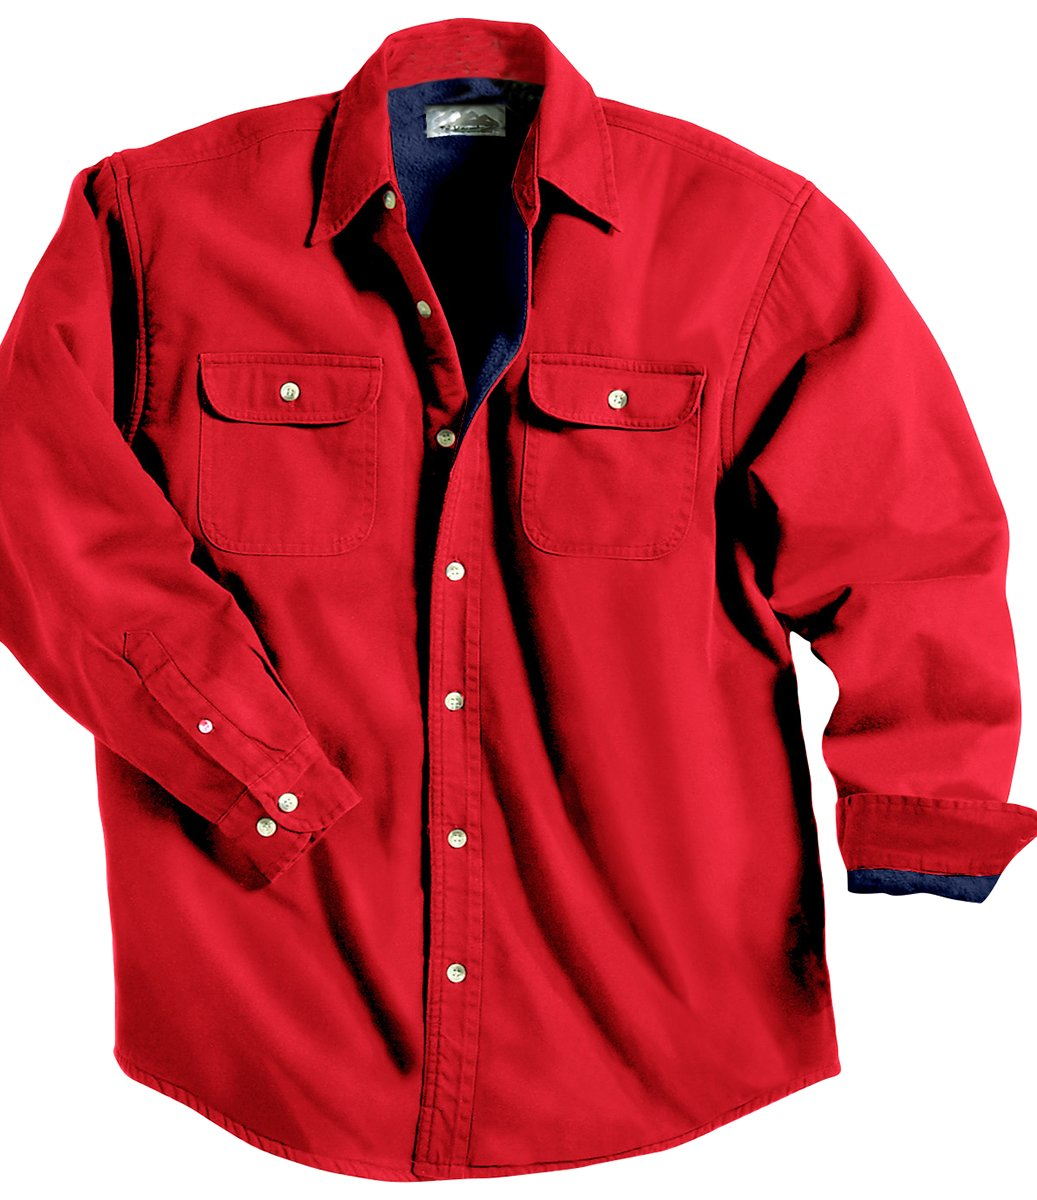 Tri-Mountain 869 Denim shirt jacket with fleece lining - Red / Navy - XL by Tri-Mountain